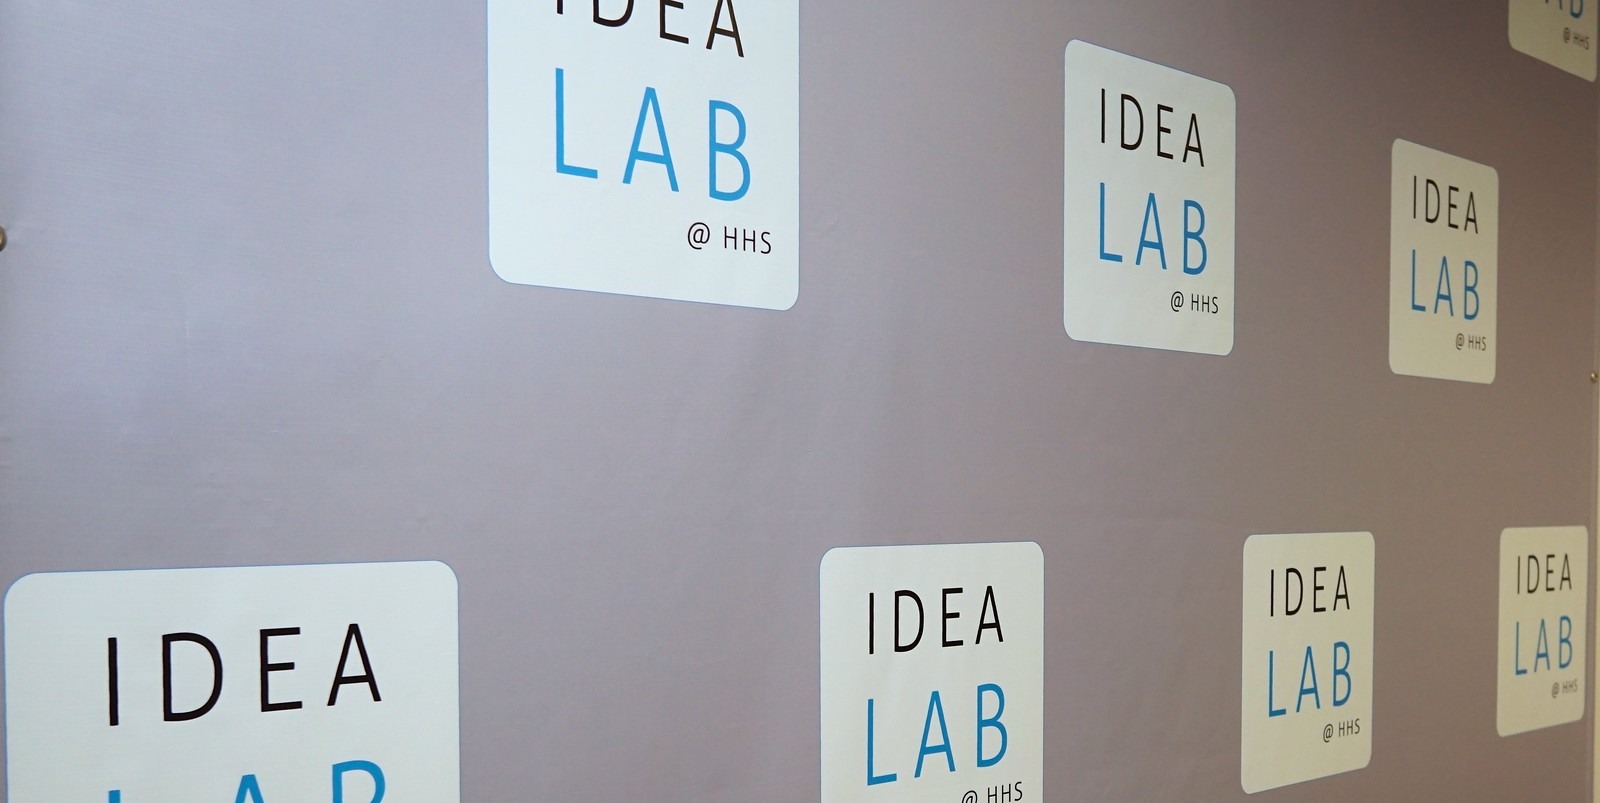 Design Thinking with HRSA Huddles and HHS IDEA Lab